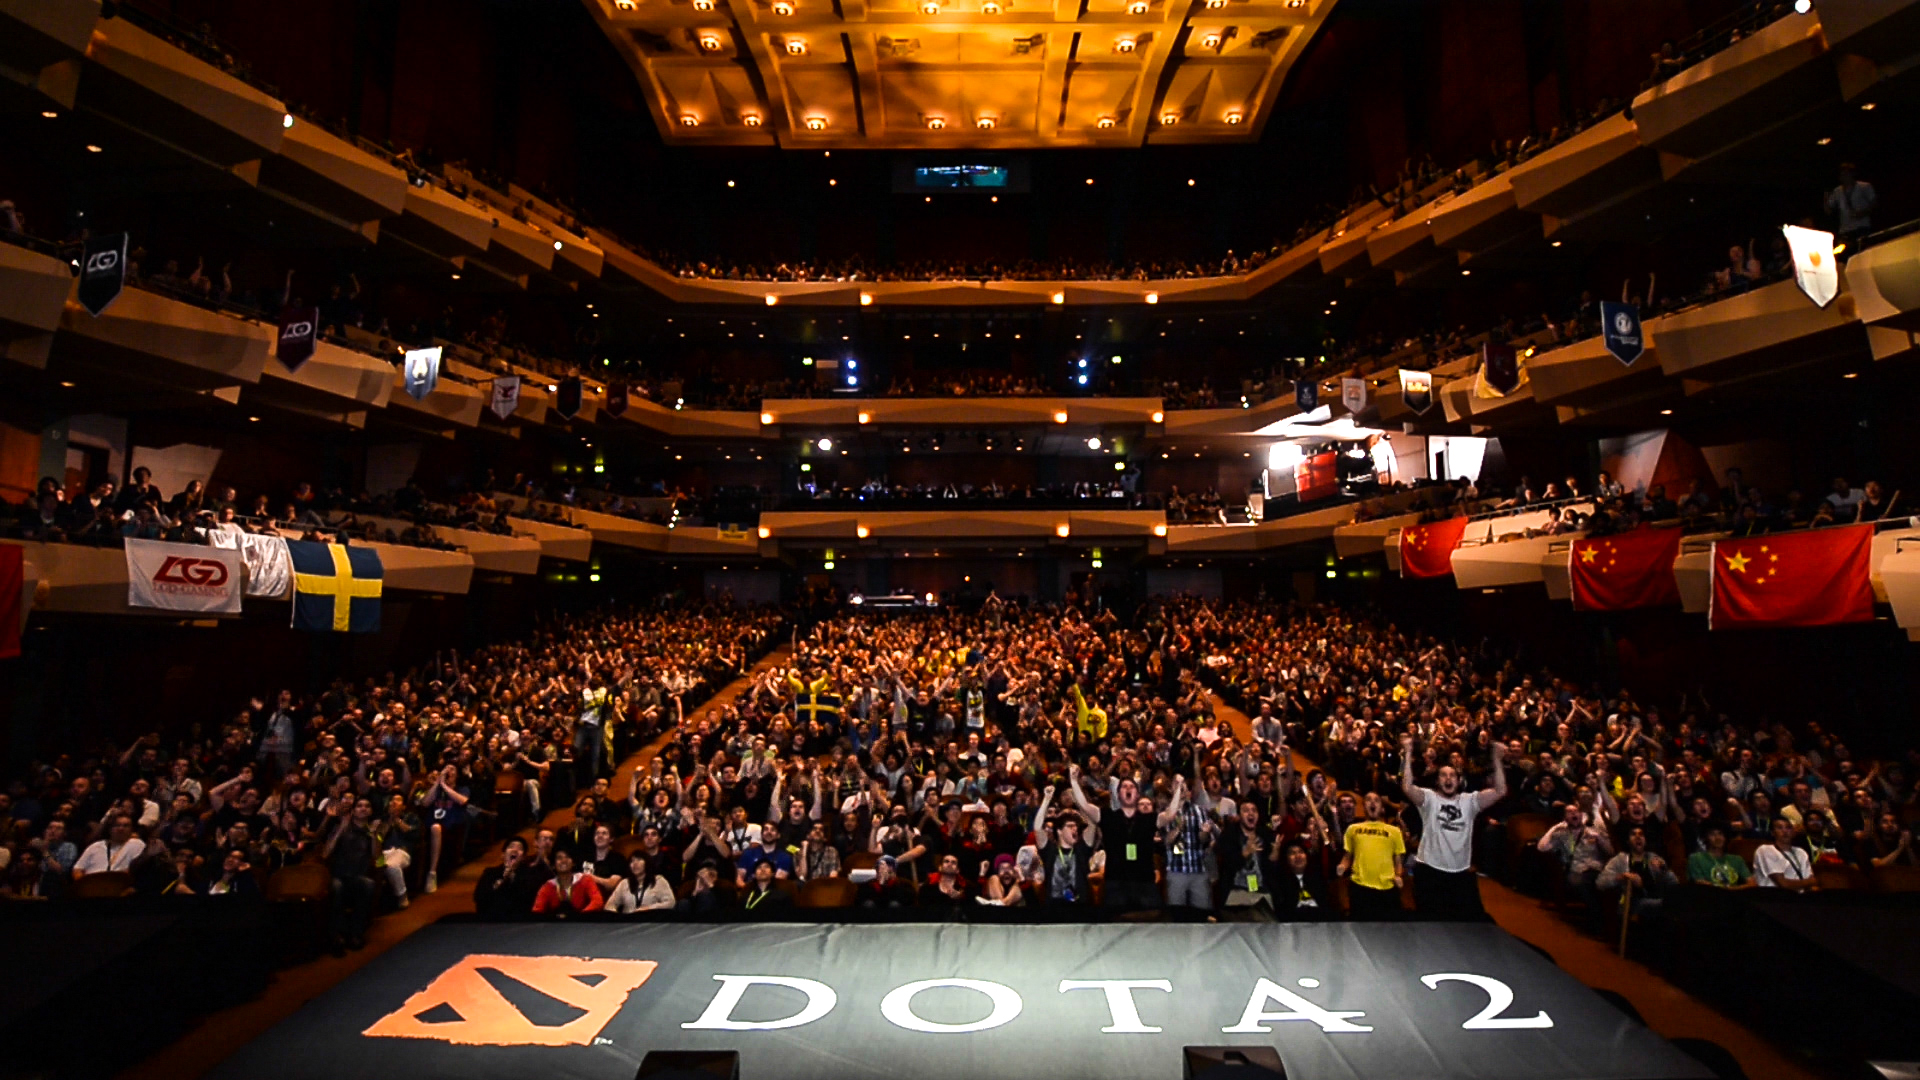 The final day of The International at the Benaroya Hall in Seattle, Washington, from August 7 to 11.